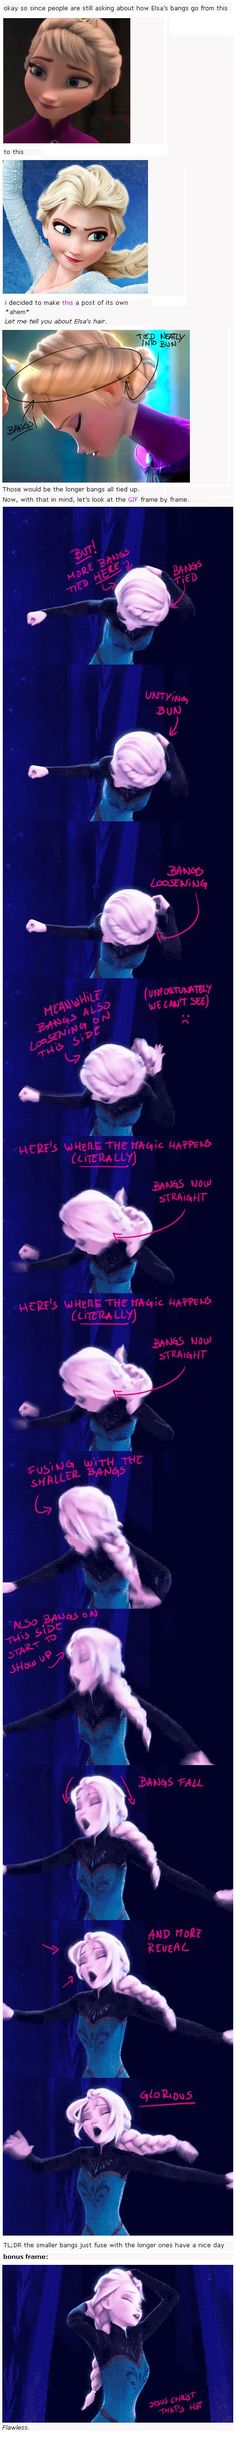 Elsa's magical hair change ... explained it the slow-mo, frame by frame sort of way